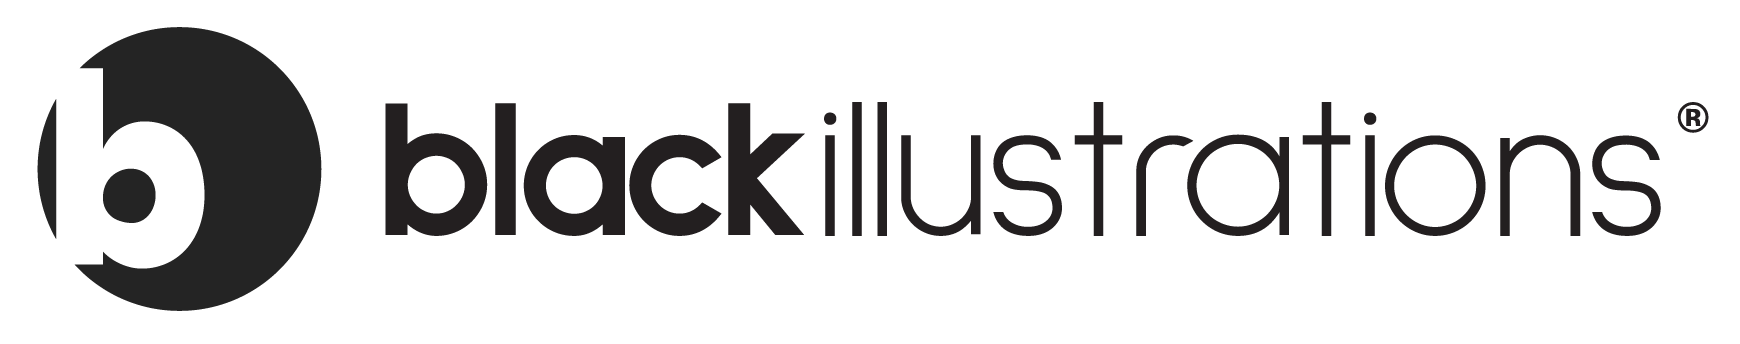 black illustrations logo in black and grey